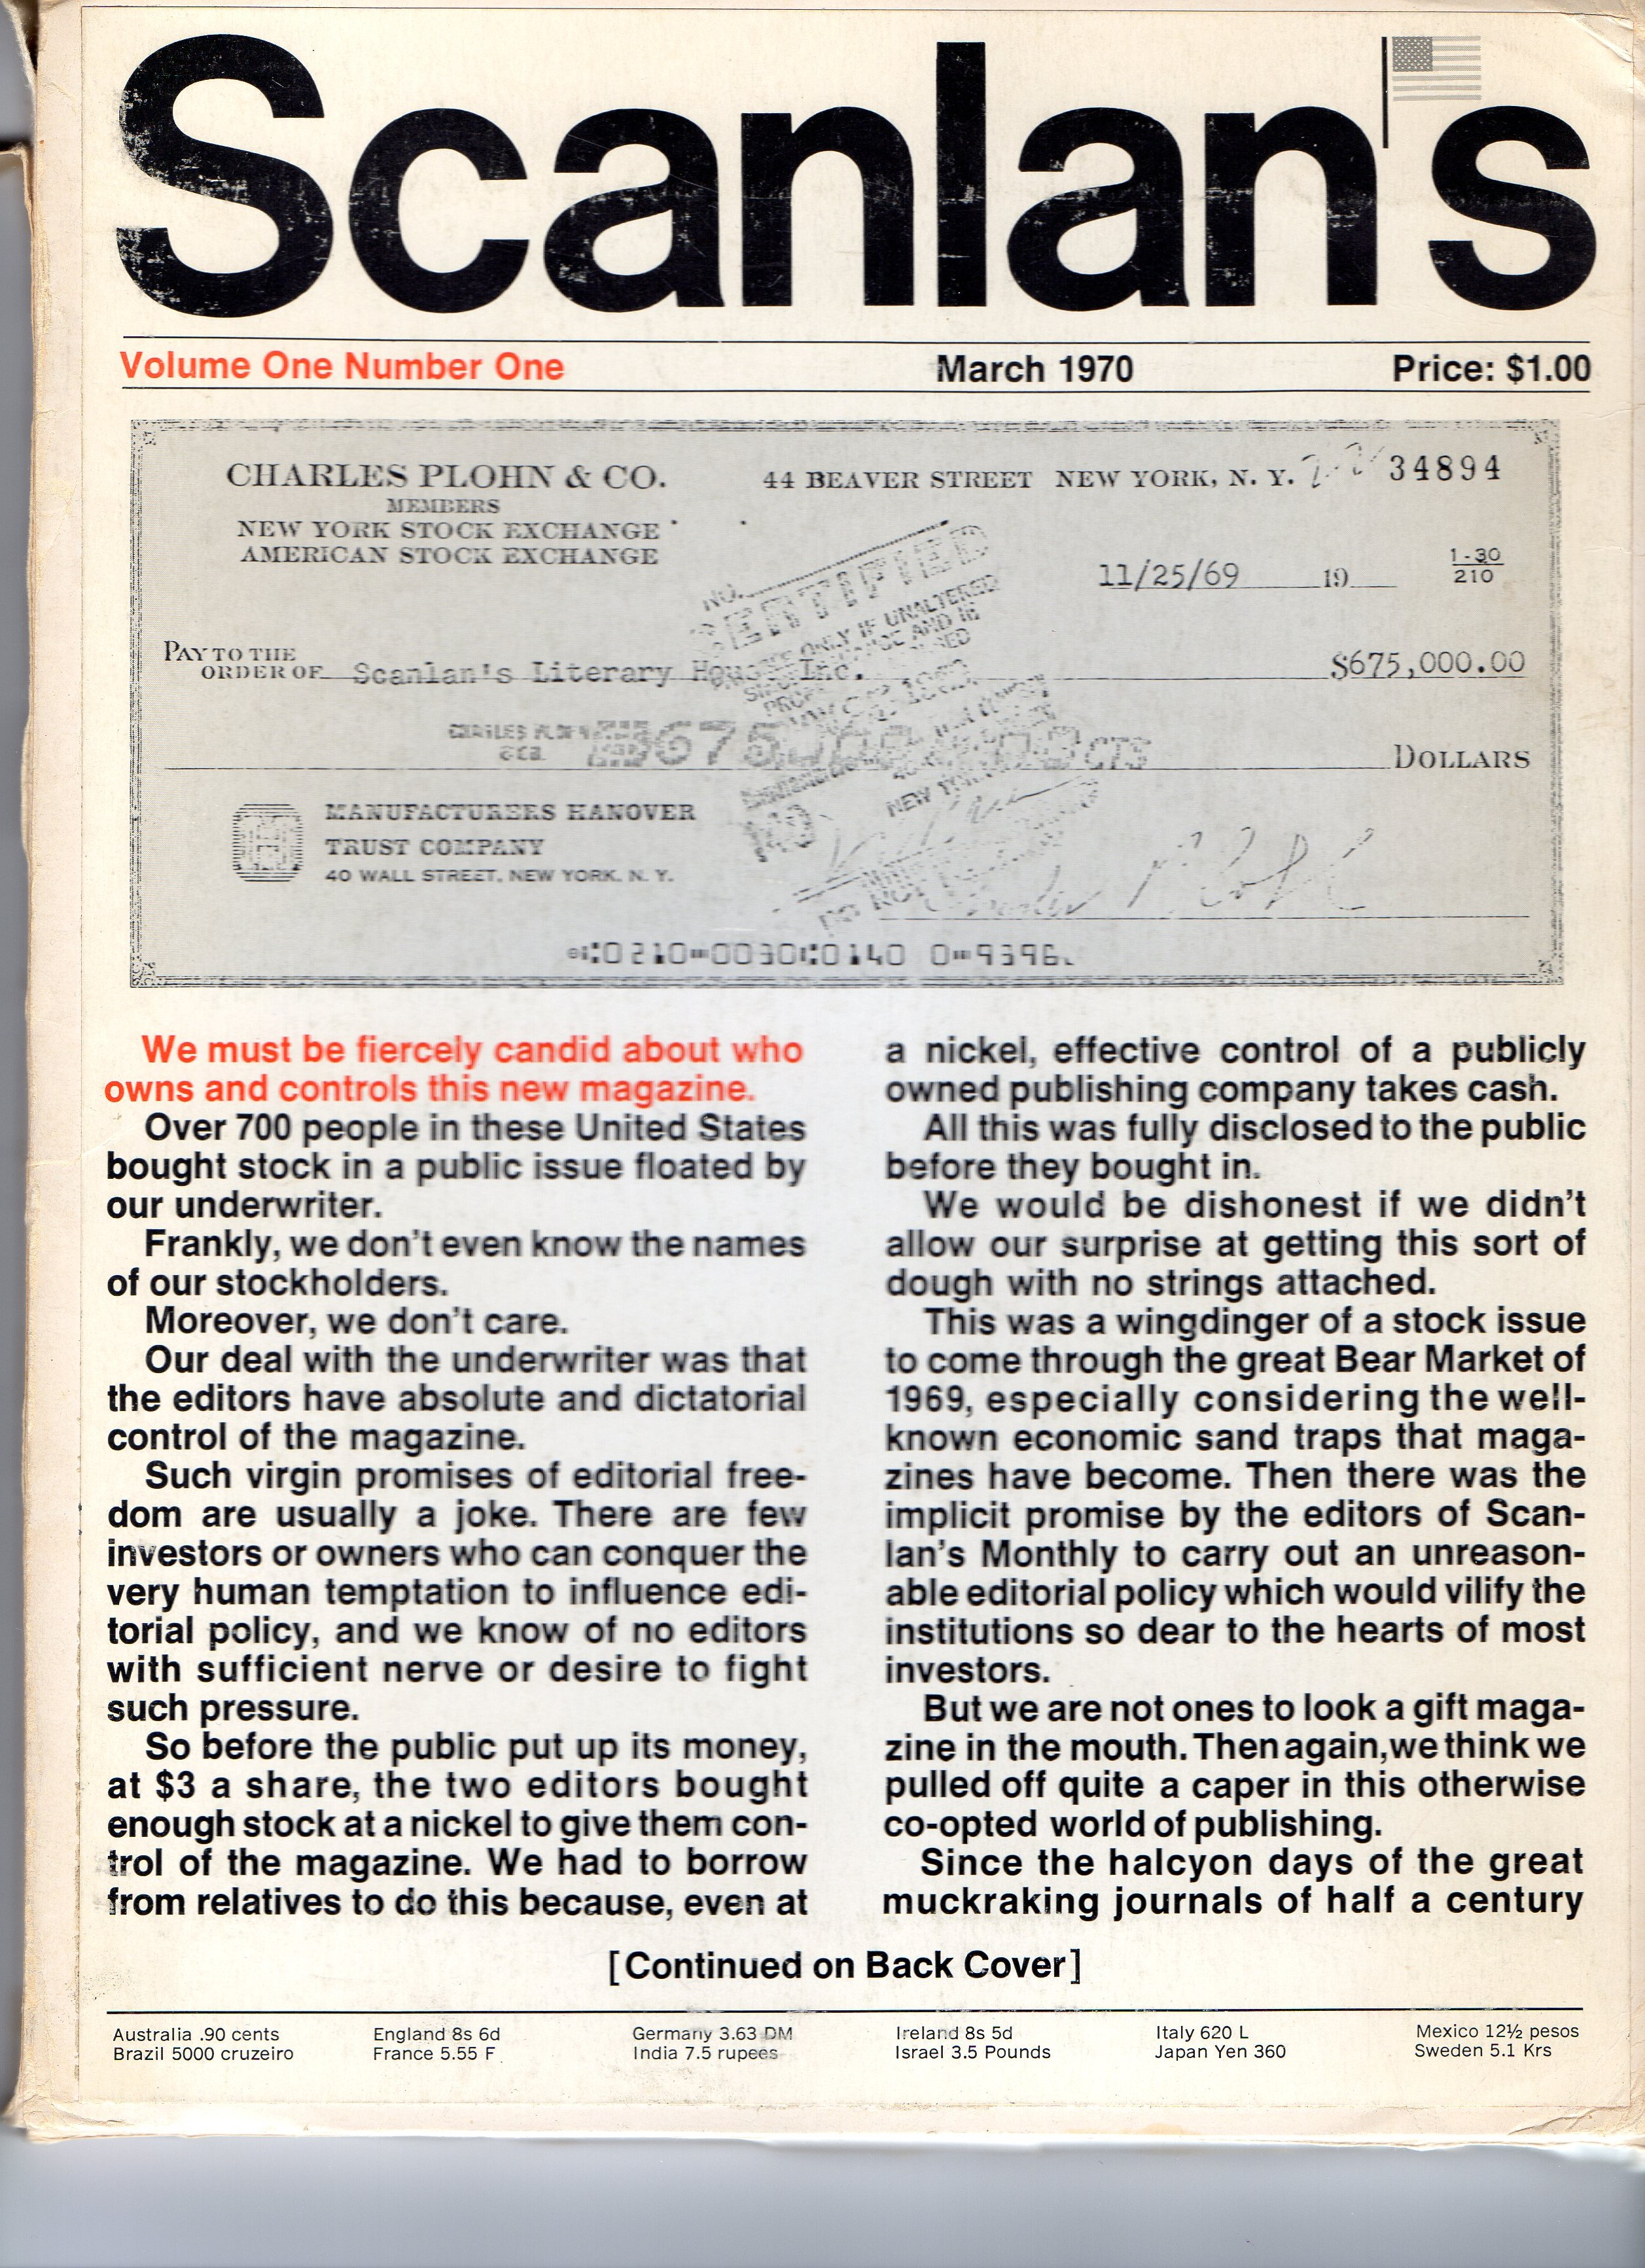 The first issue of Scanlan's Monthly, March 1970